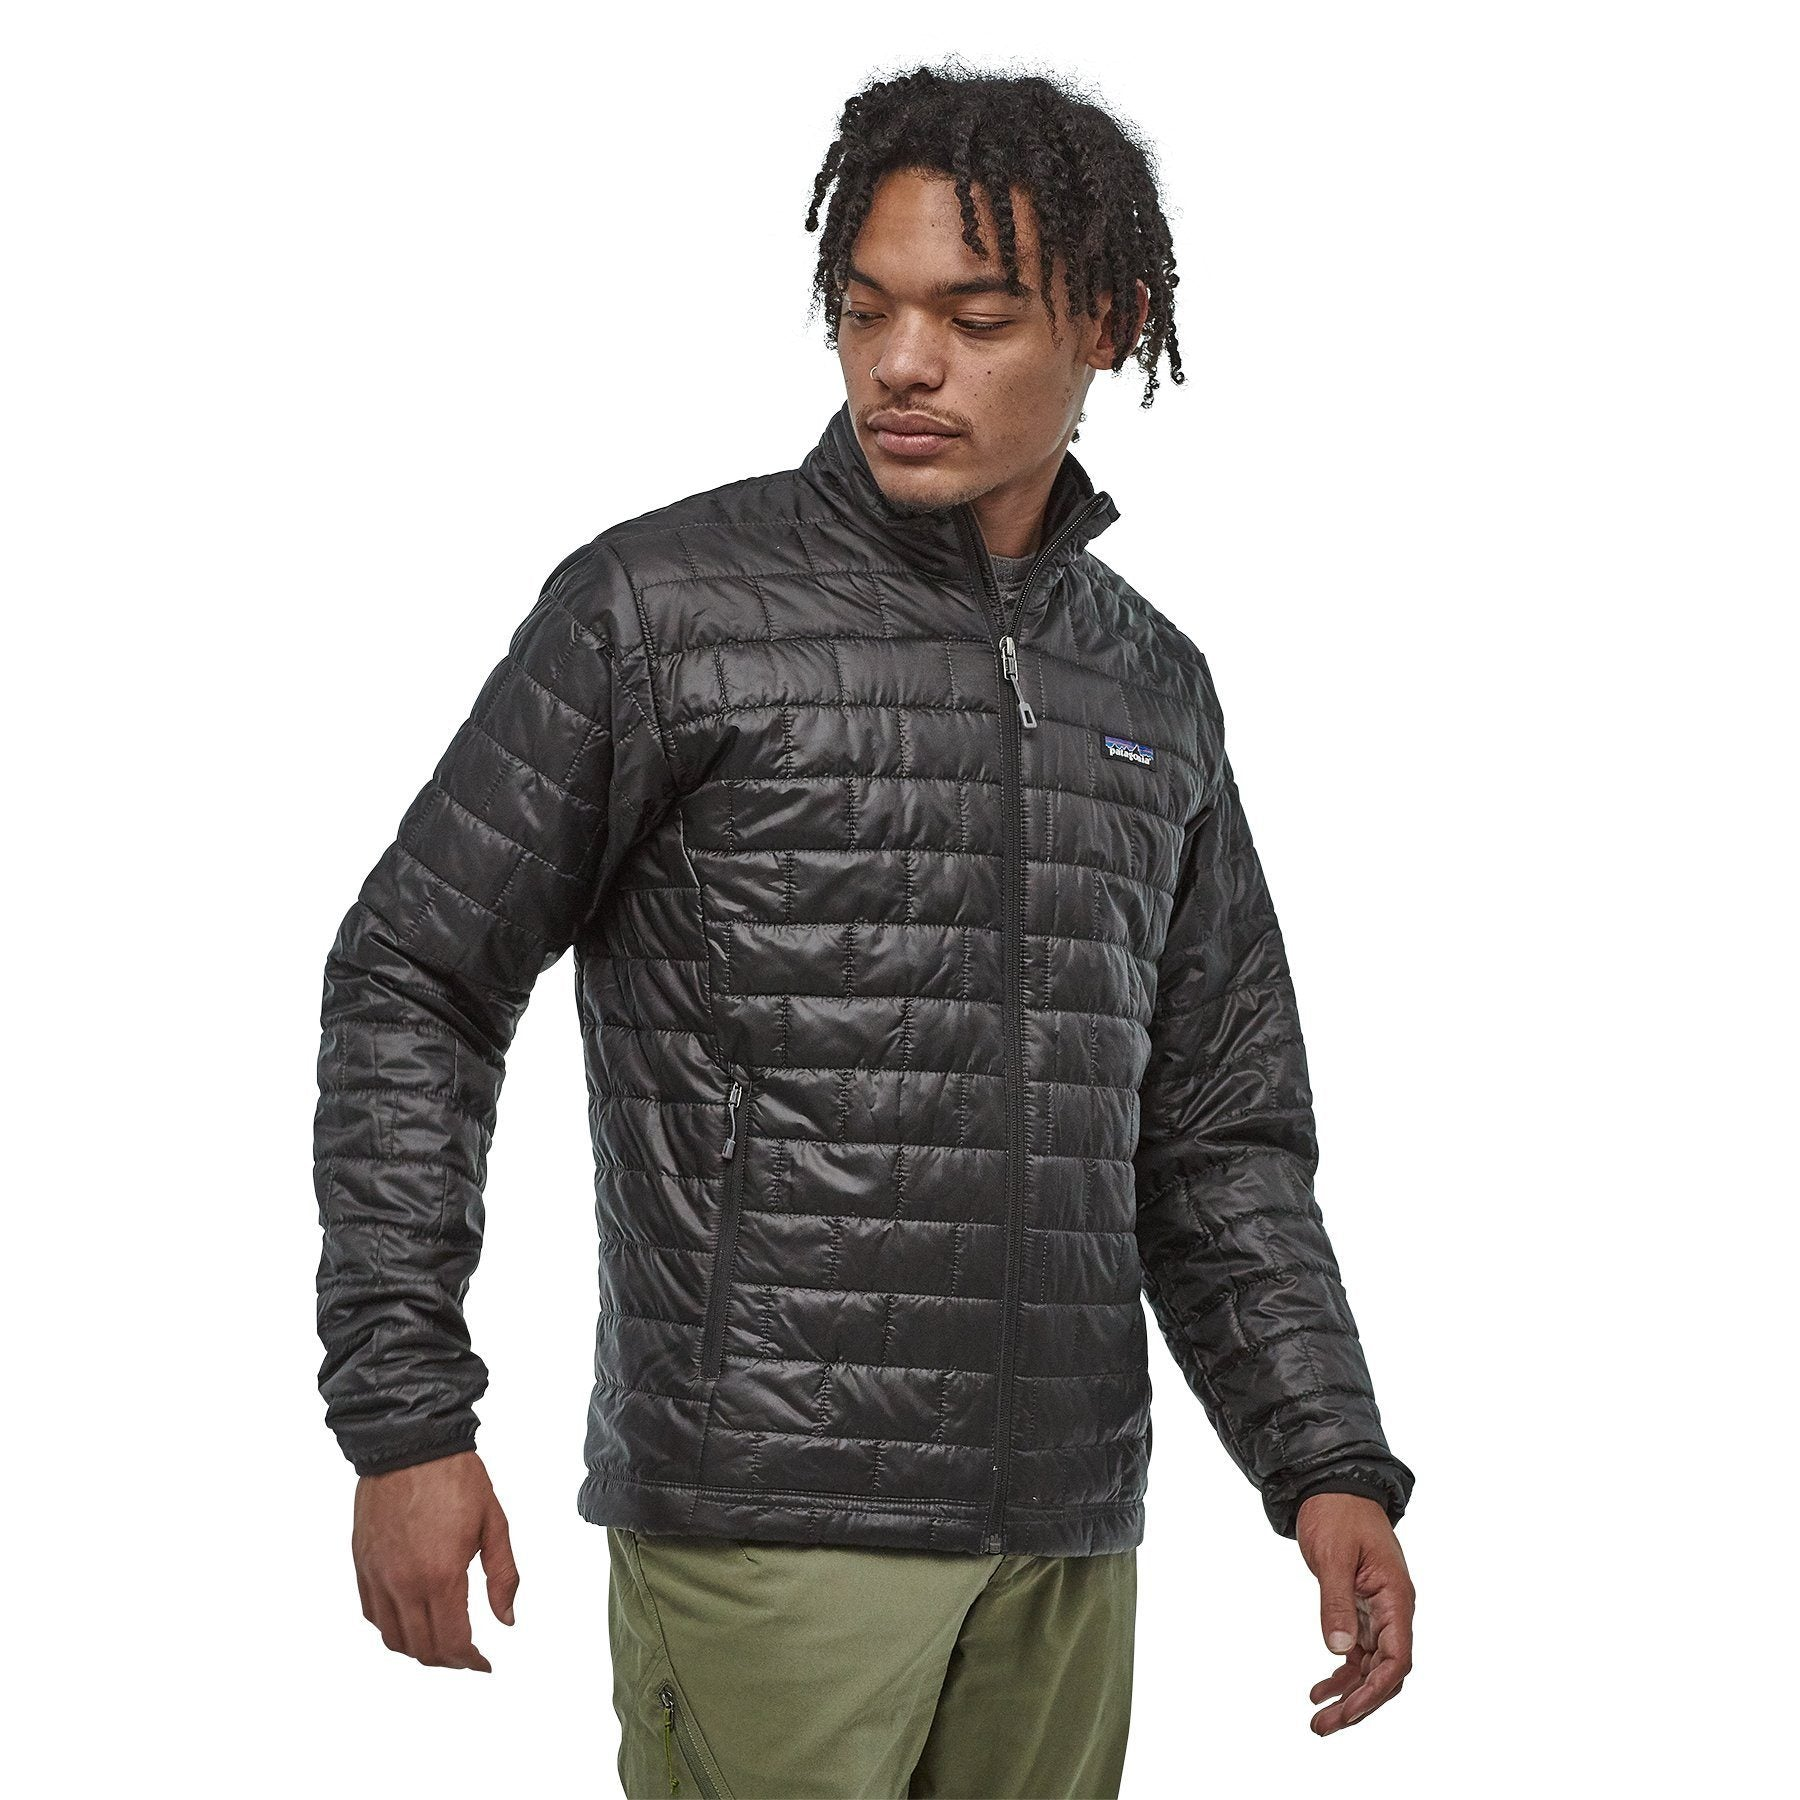 Patagonia - M's Nano Puff Jacket - 100% Recycled Polyester - Weekendbee - sustainable sportswear